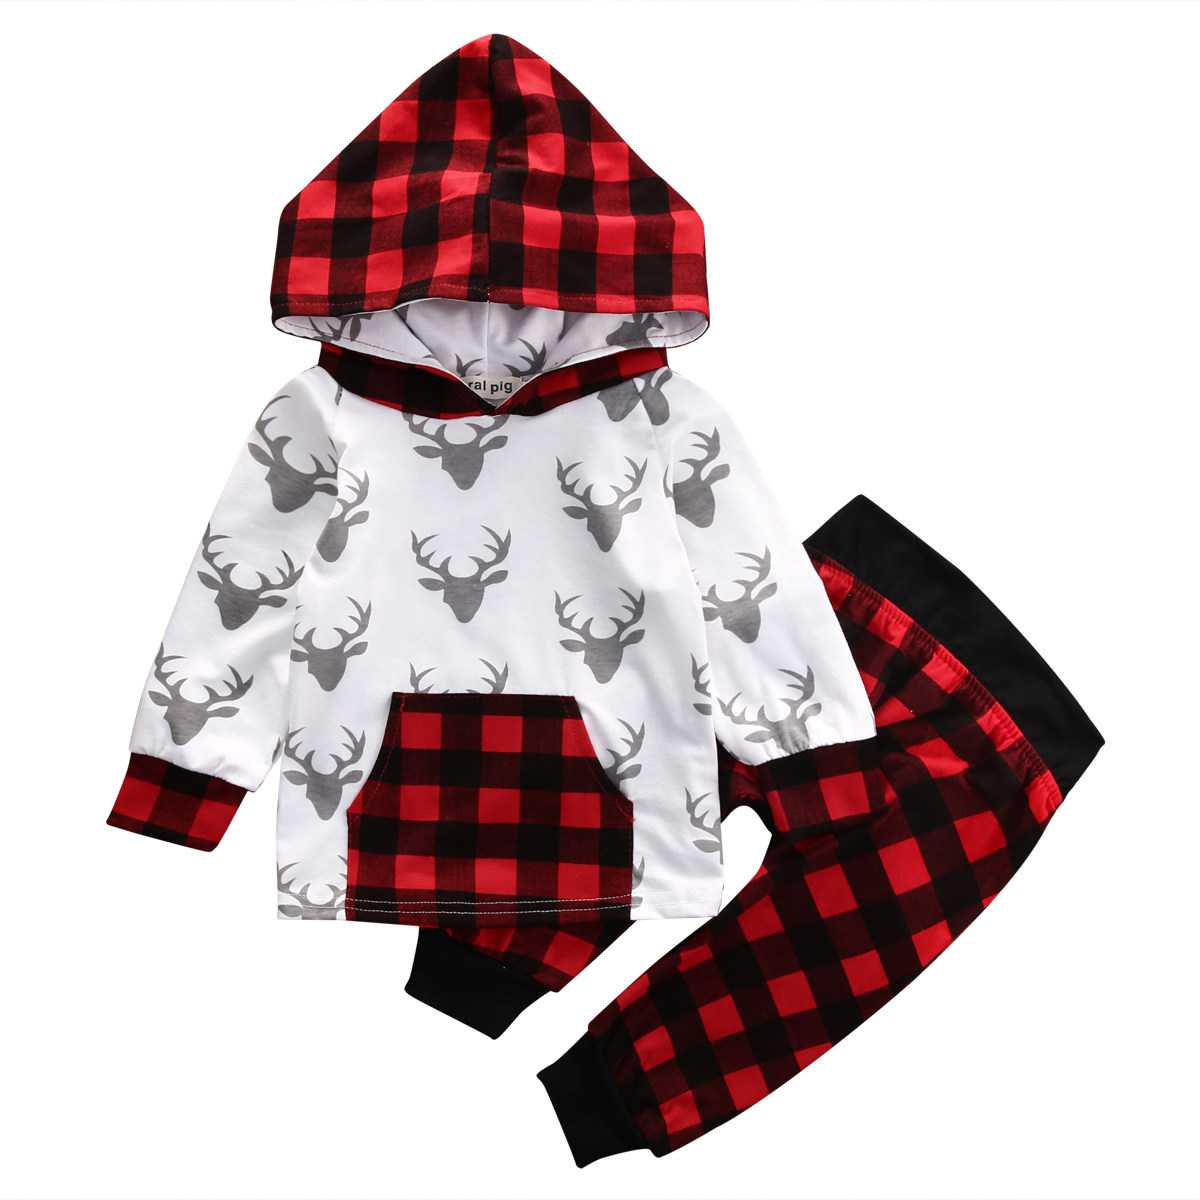 2PCS Toddler Kids Baby Boy Girl Clothes Fashion Suit Newborn Infant Bebes Deer Long Sleeve Hooded Top T-shirt Plaid Pant Outfit 2017 new fashion cute rompers toddlers unisex baby clothes newborn baby overalls ropa bebes pajamas kids toddler clothes sr133